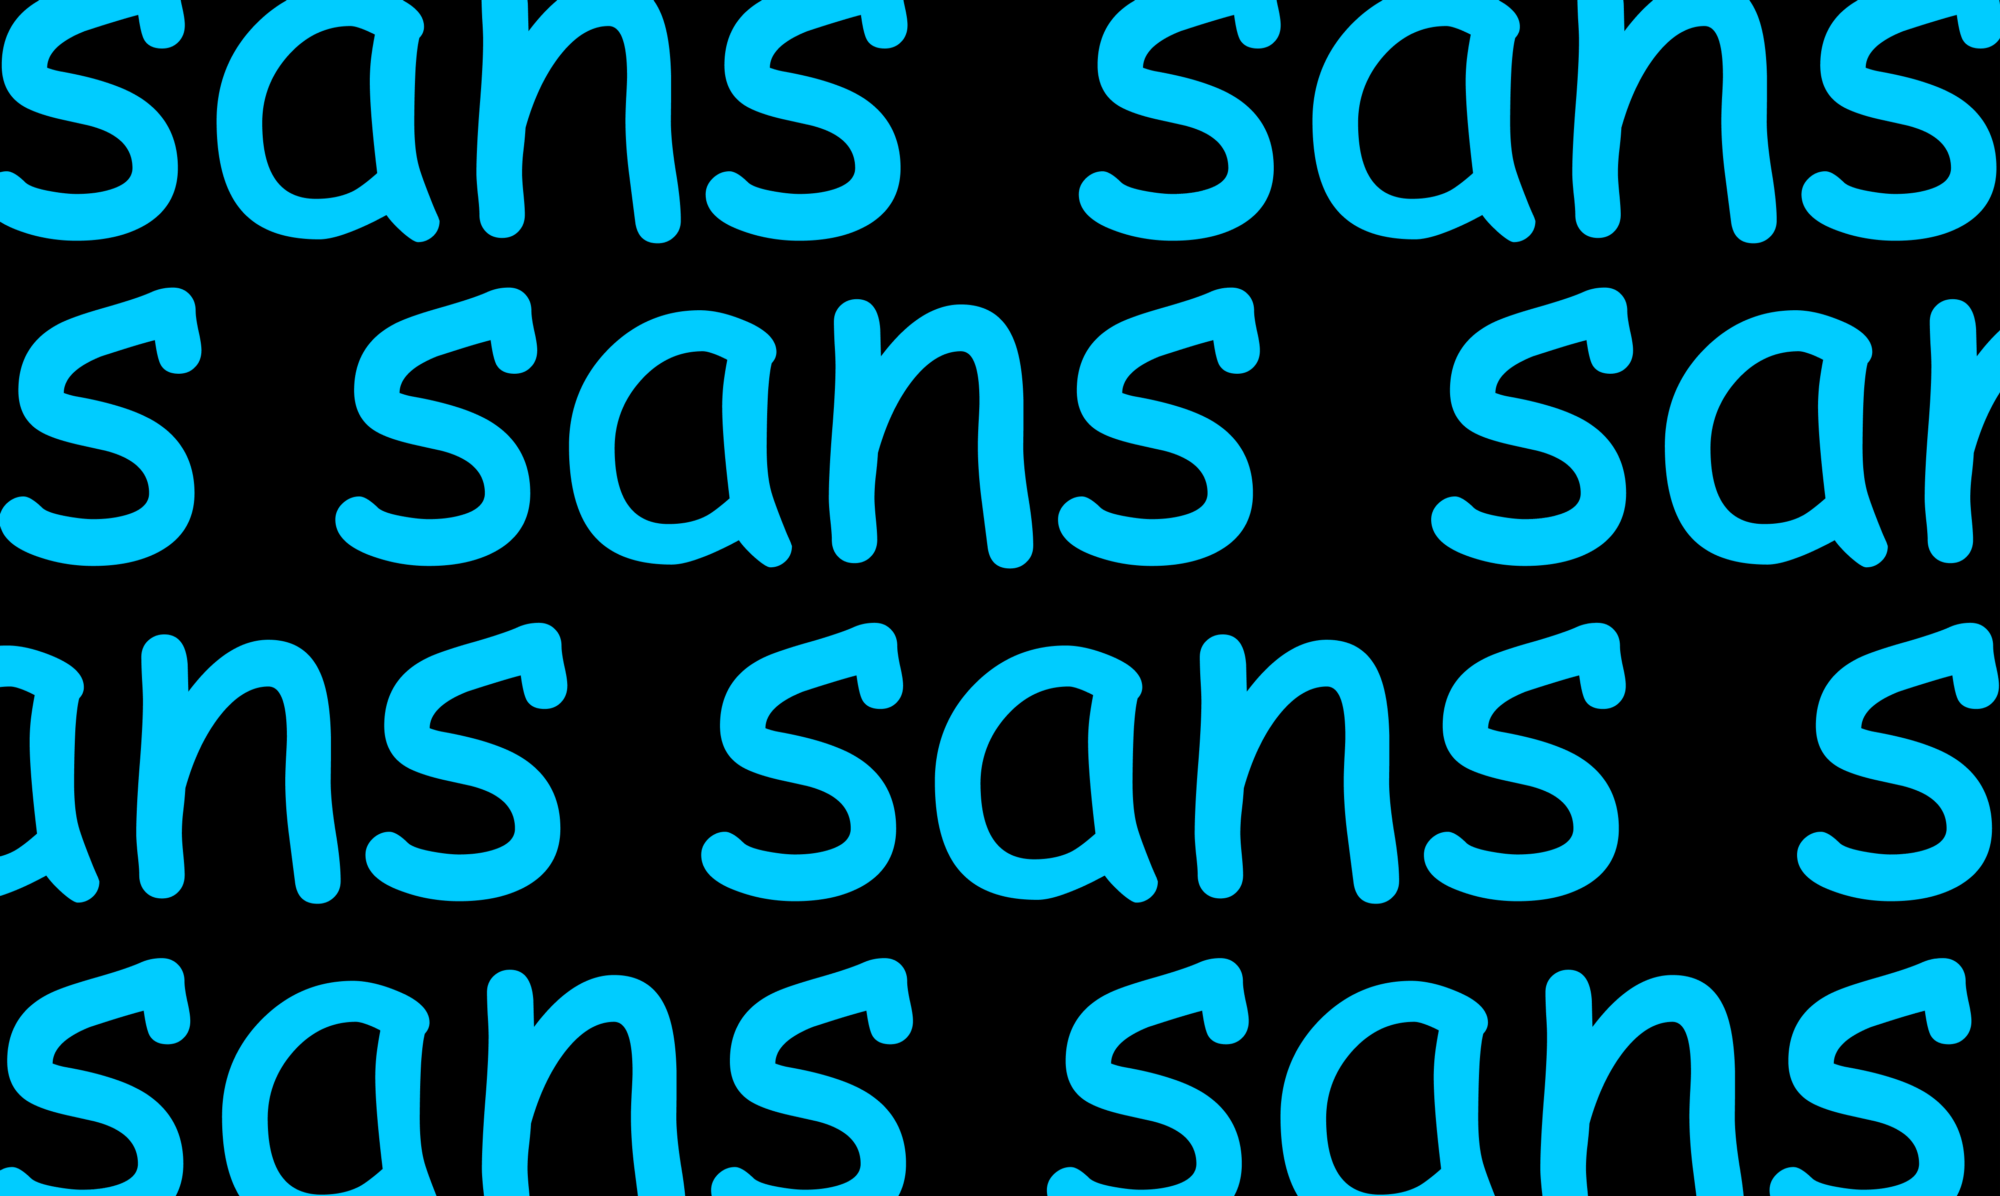 """sans"" repeated in comic sans"